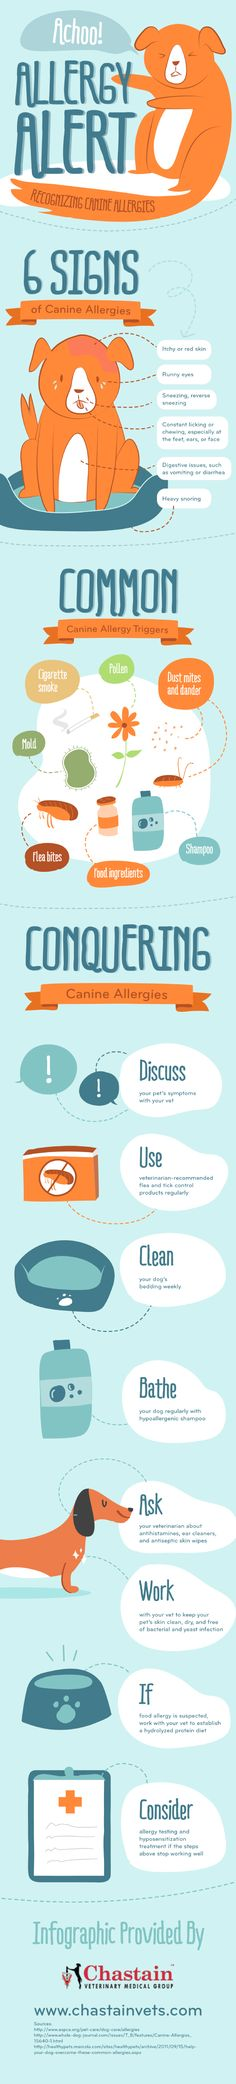 6 Signs of Canine Allergies